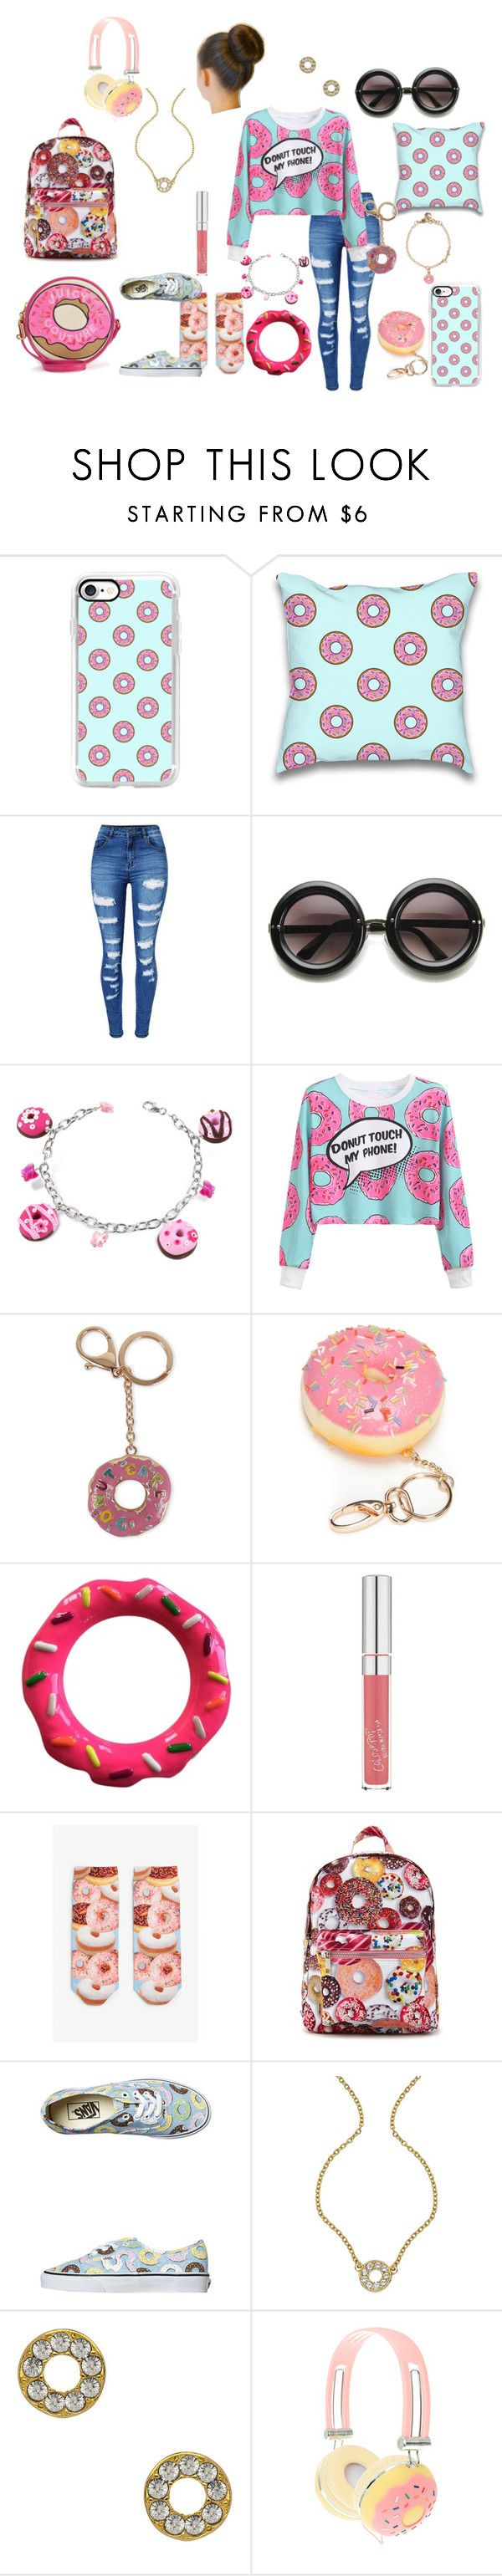 """""""Dounut"""" by zaria-costley ❤ liked on Polyvore featuring Casetify, WithChic, ZeroUV, Dolci Gioie, Viola, Red Camel, Kate Spade, Monki, Forever 21 and Vans"""